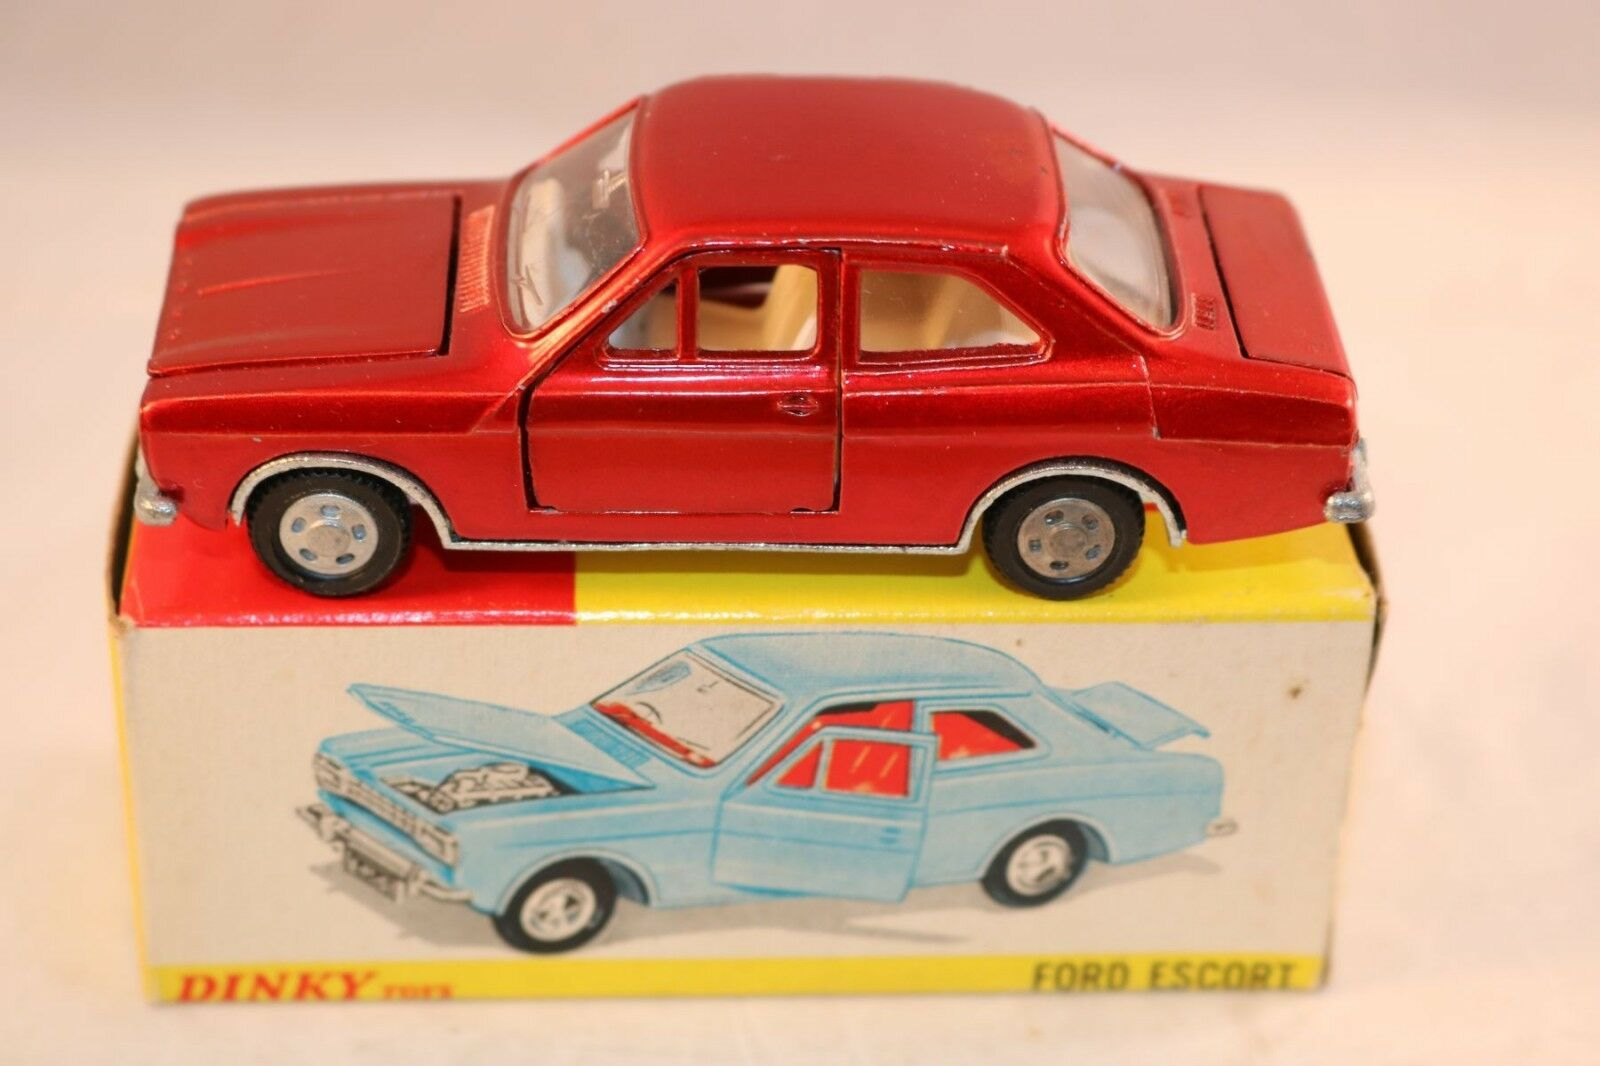 Dinky Toys 168 Ford Escort near mint in box all original condition